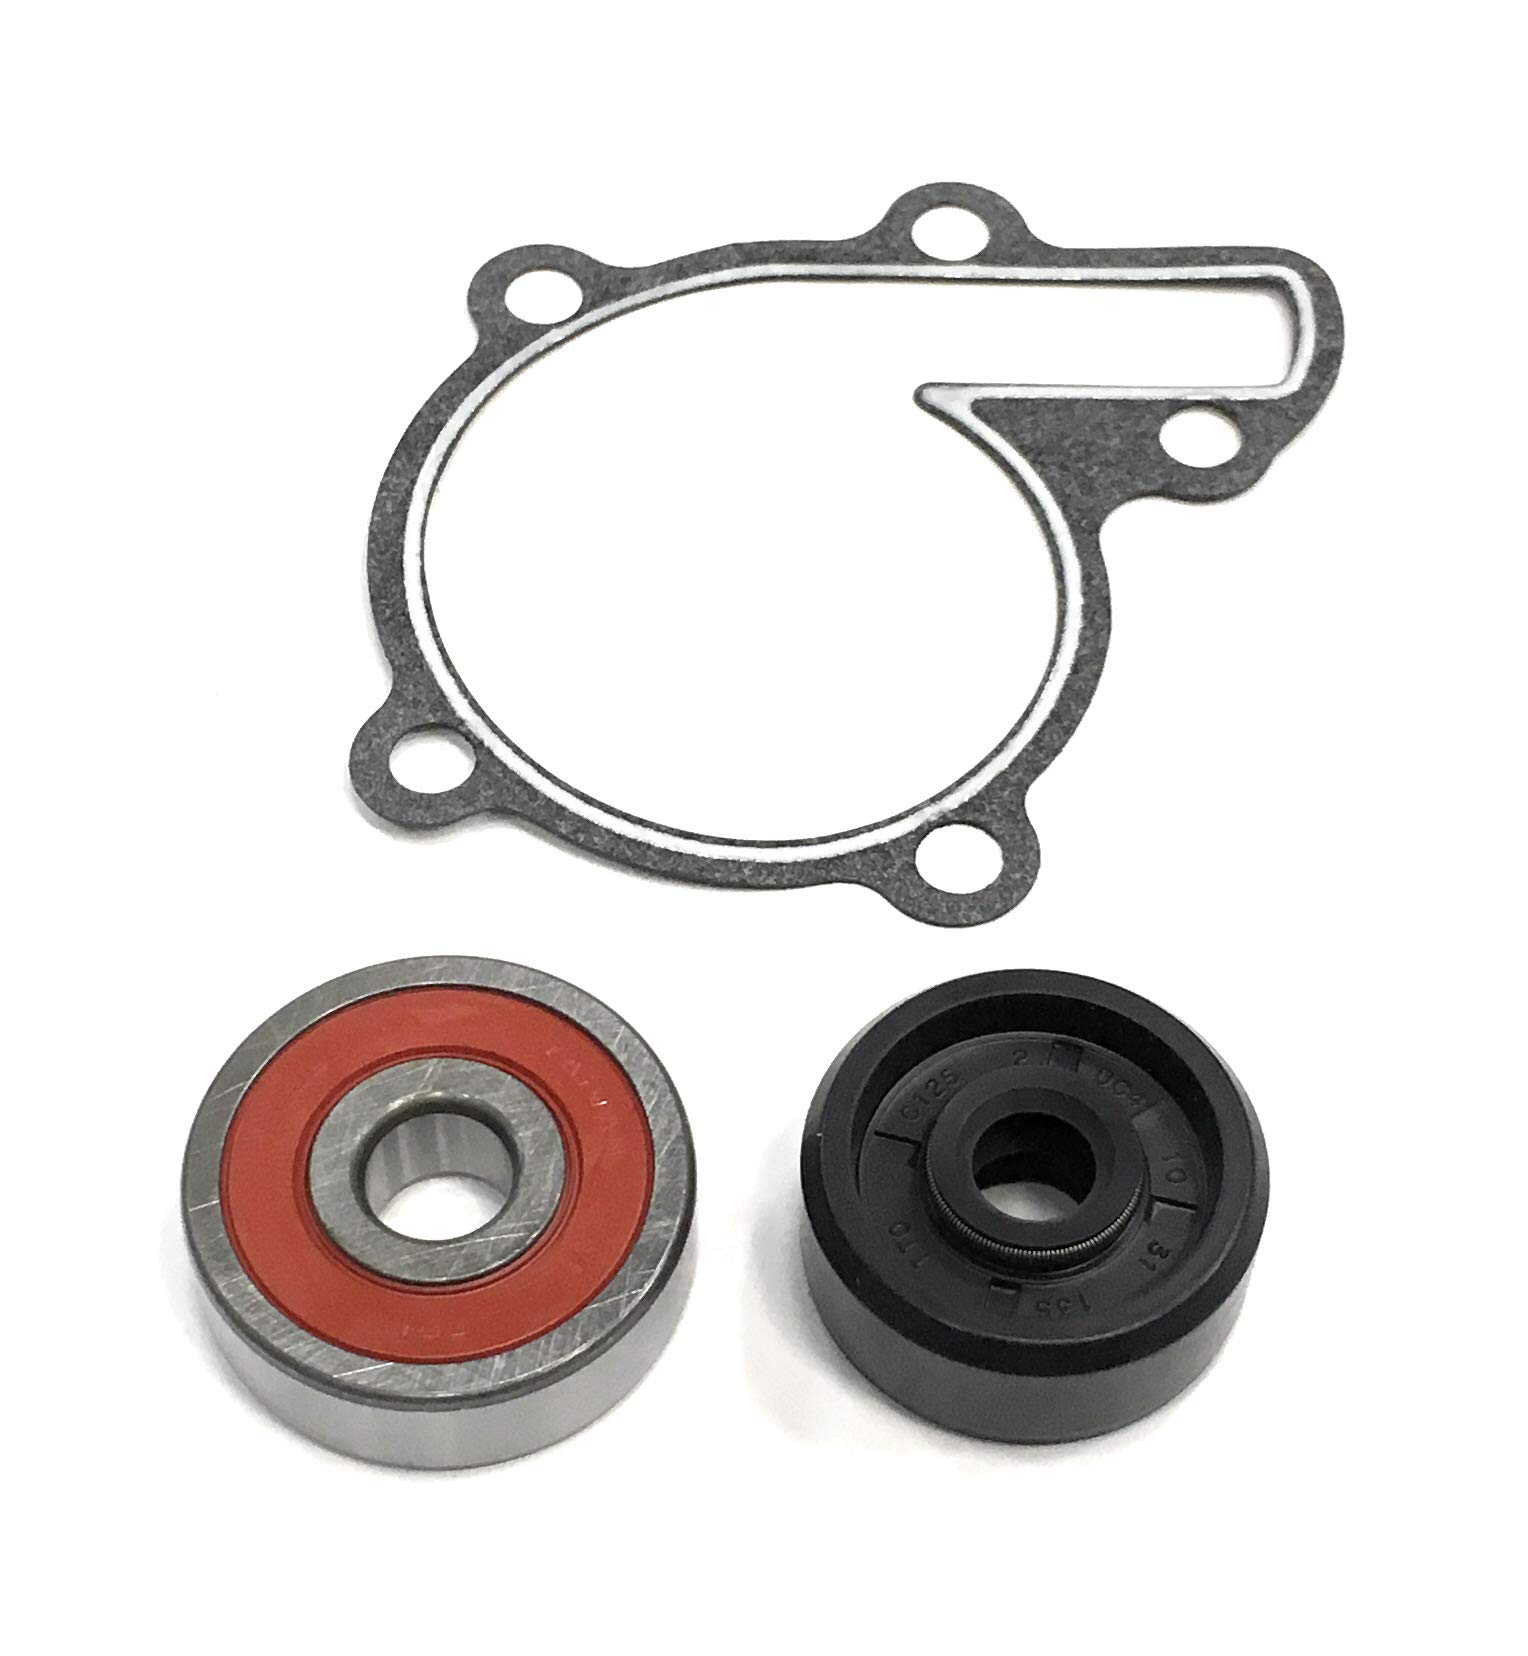 REPLACEMENTKITS.COM Brand Fits Yamaha 350 Warrior and YFM350 Front Bearings /& Seals